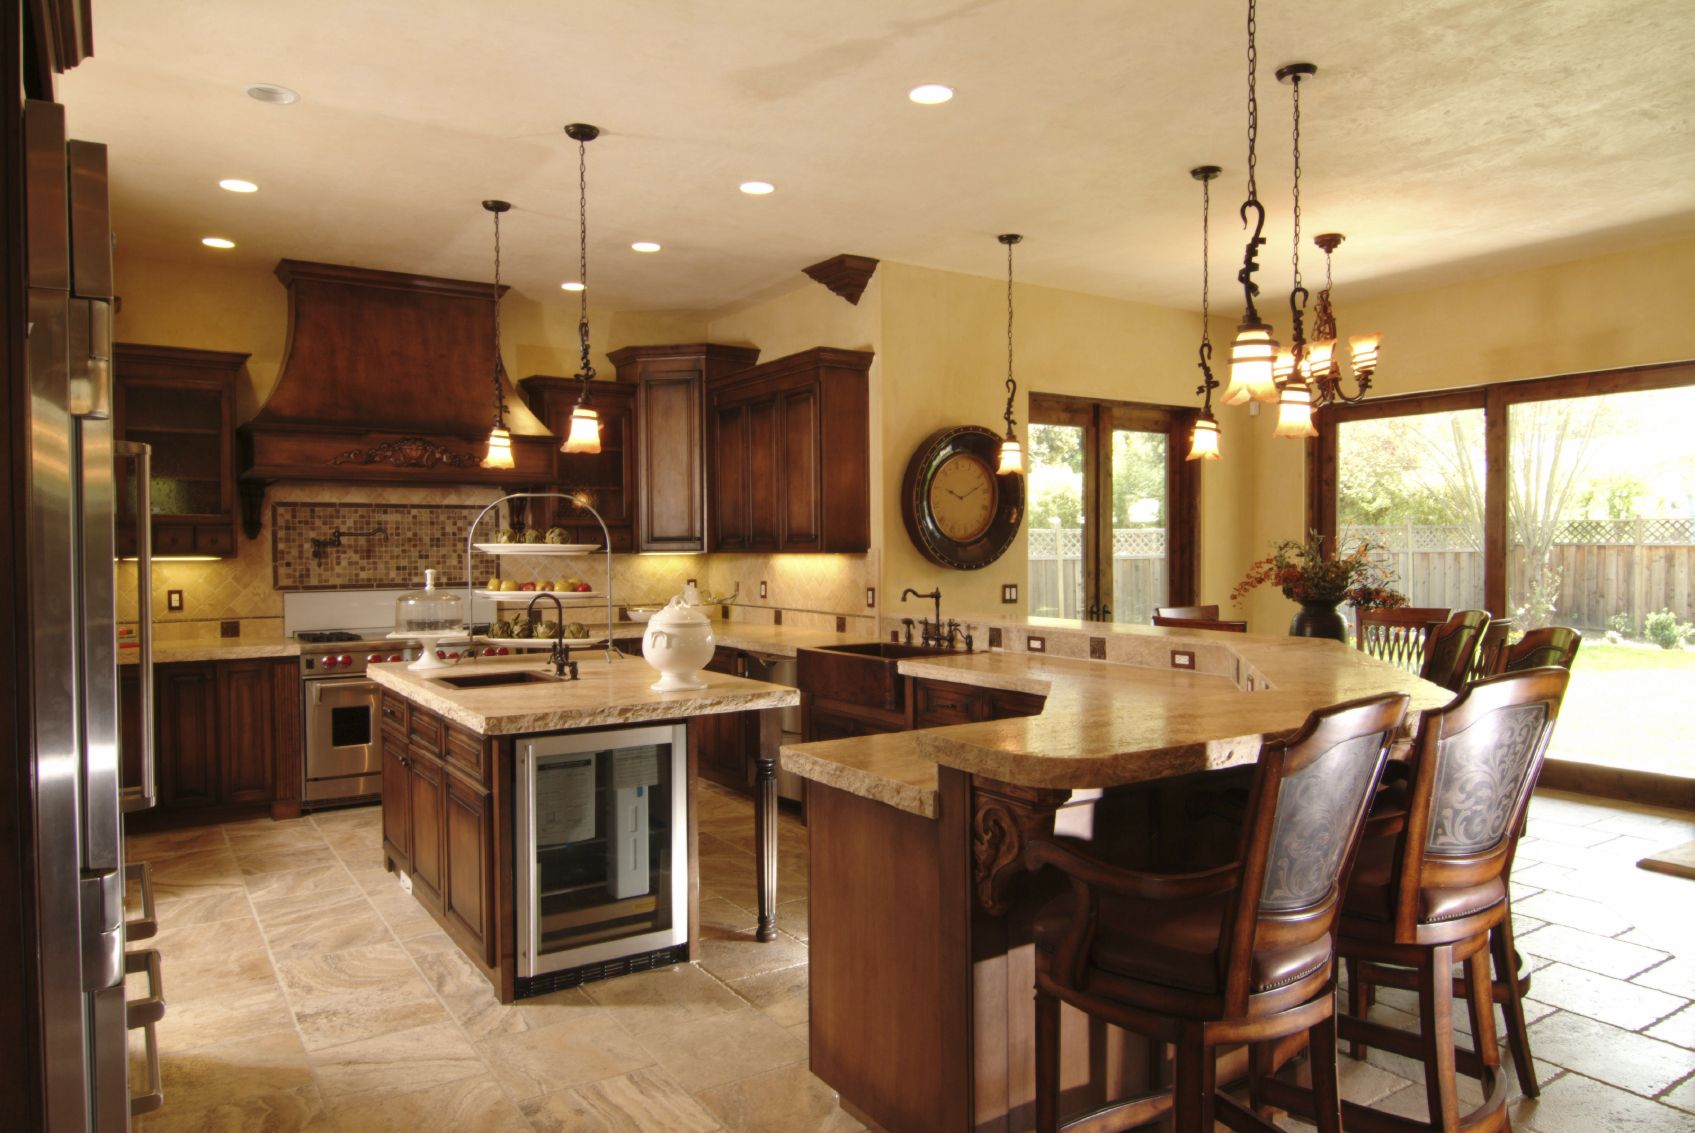 Wrap Around Kitchen Cabinets How To Smartly Organize Your Kitchen Countertop Designs Kitchen